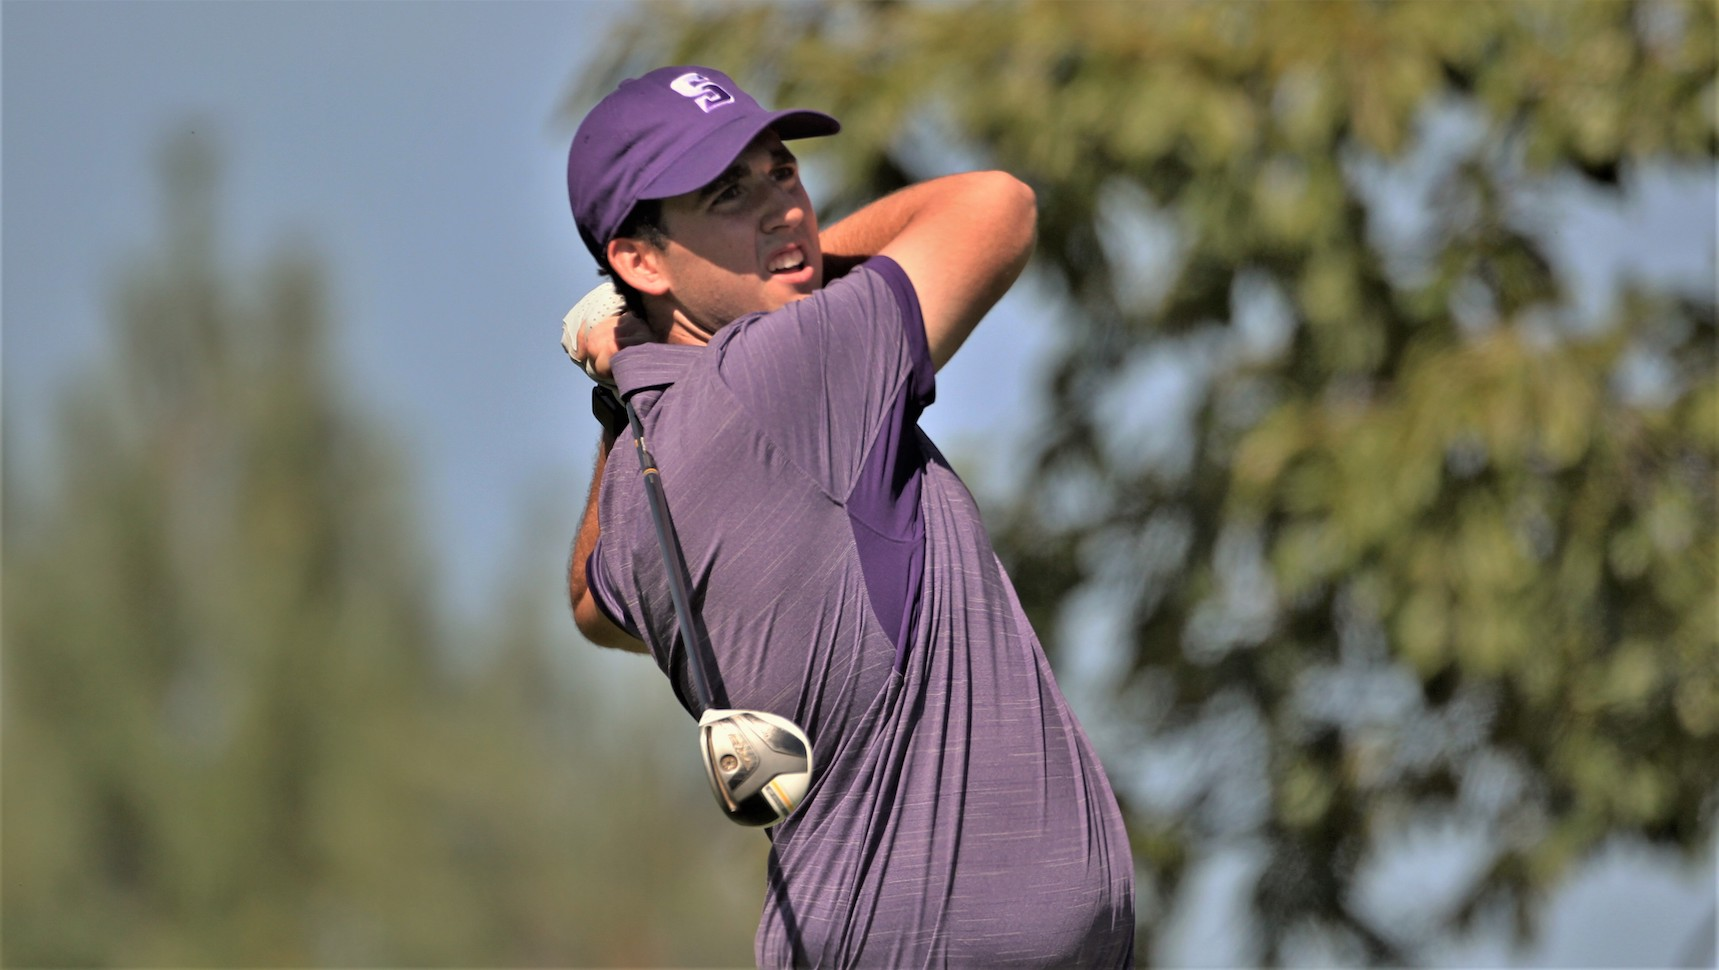 Junior Colin Sommers posted an 80 on Monday at Valley Country Club to finish in a tie for third on the leaderboard at the Valley C.C. Invitational. © Photo by Timothy R. Dougherty / doubleeaglephotography.com